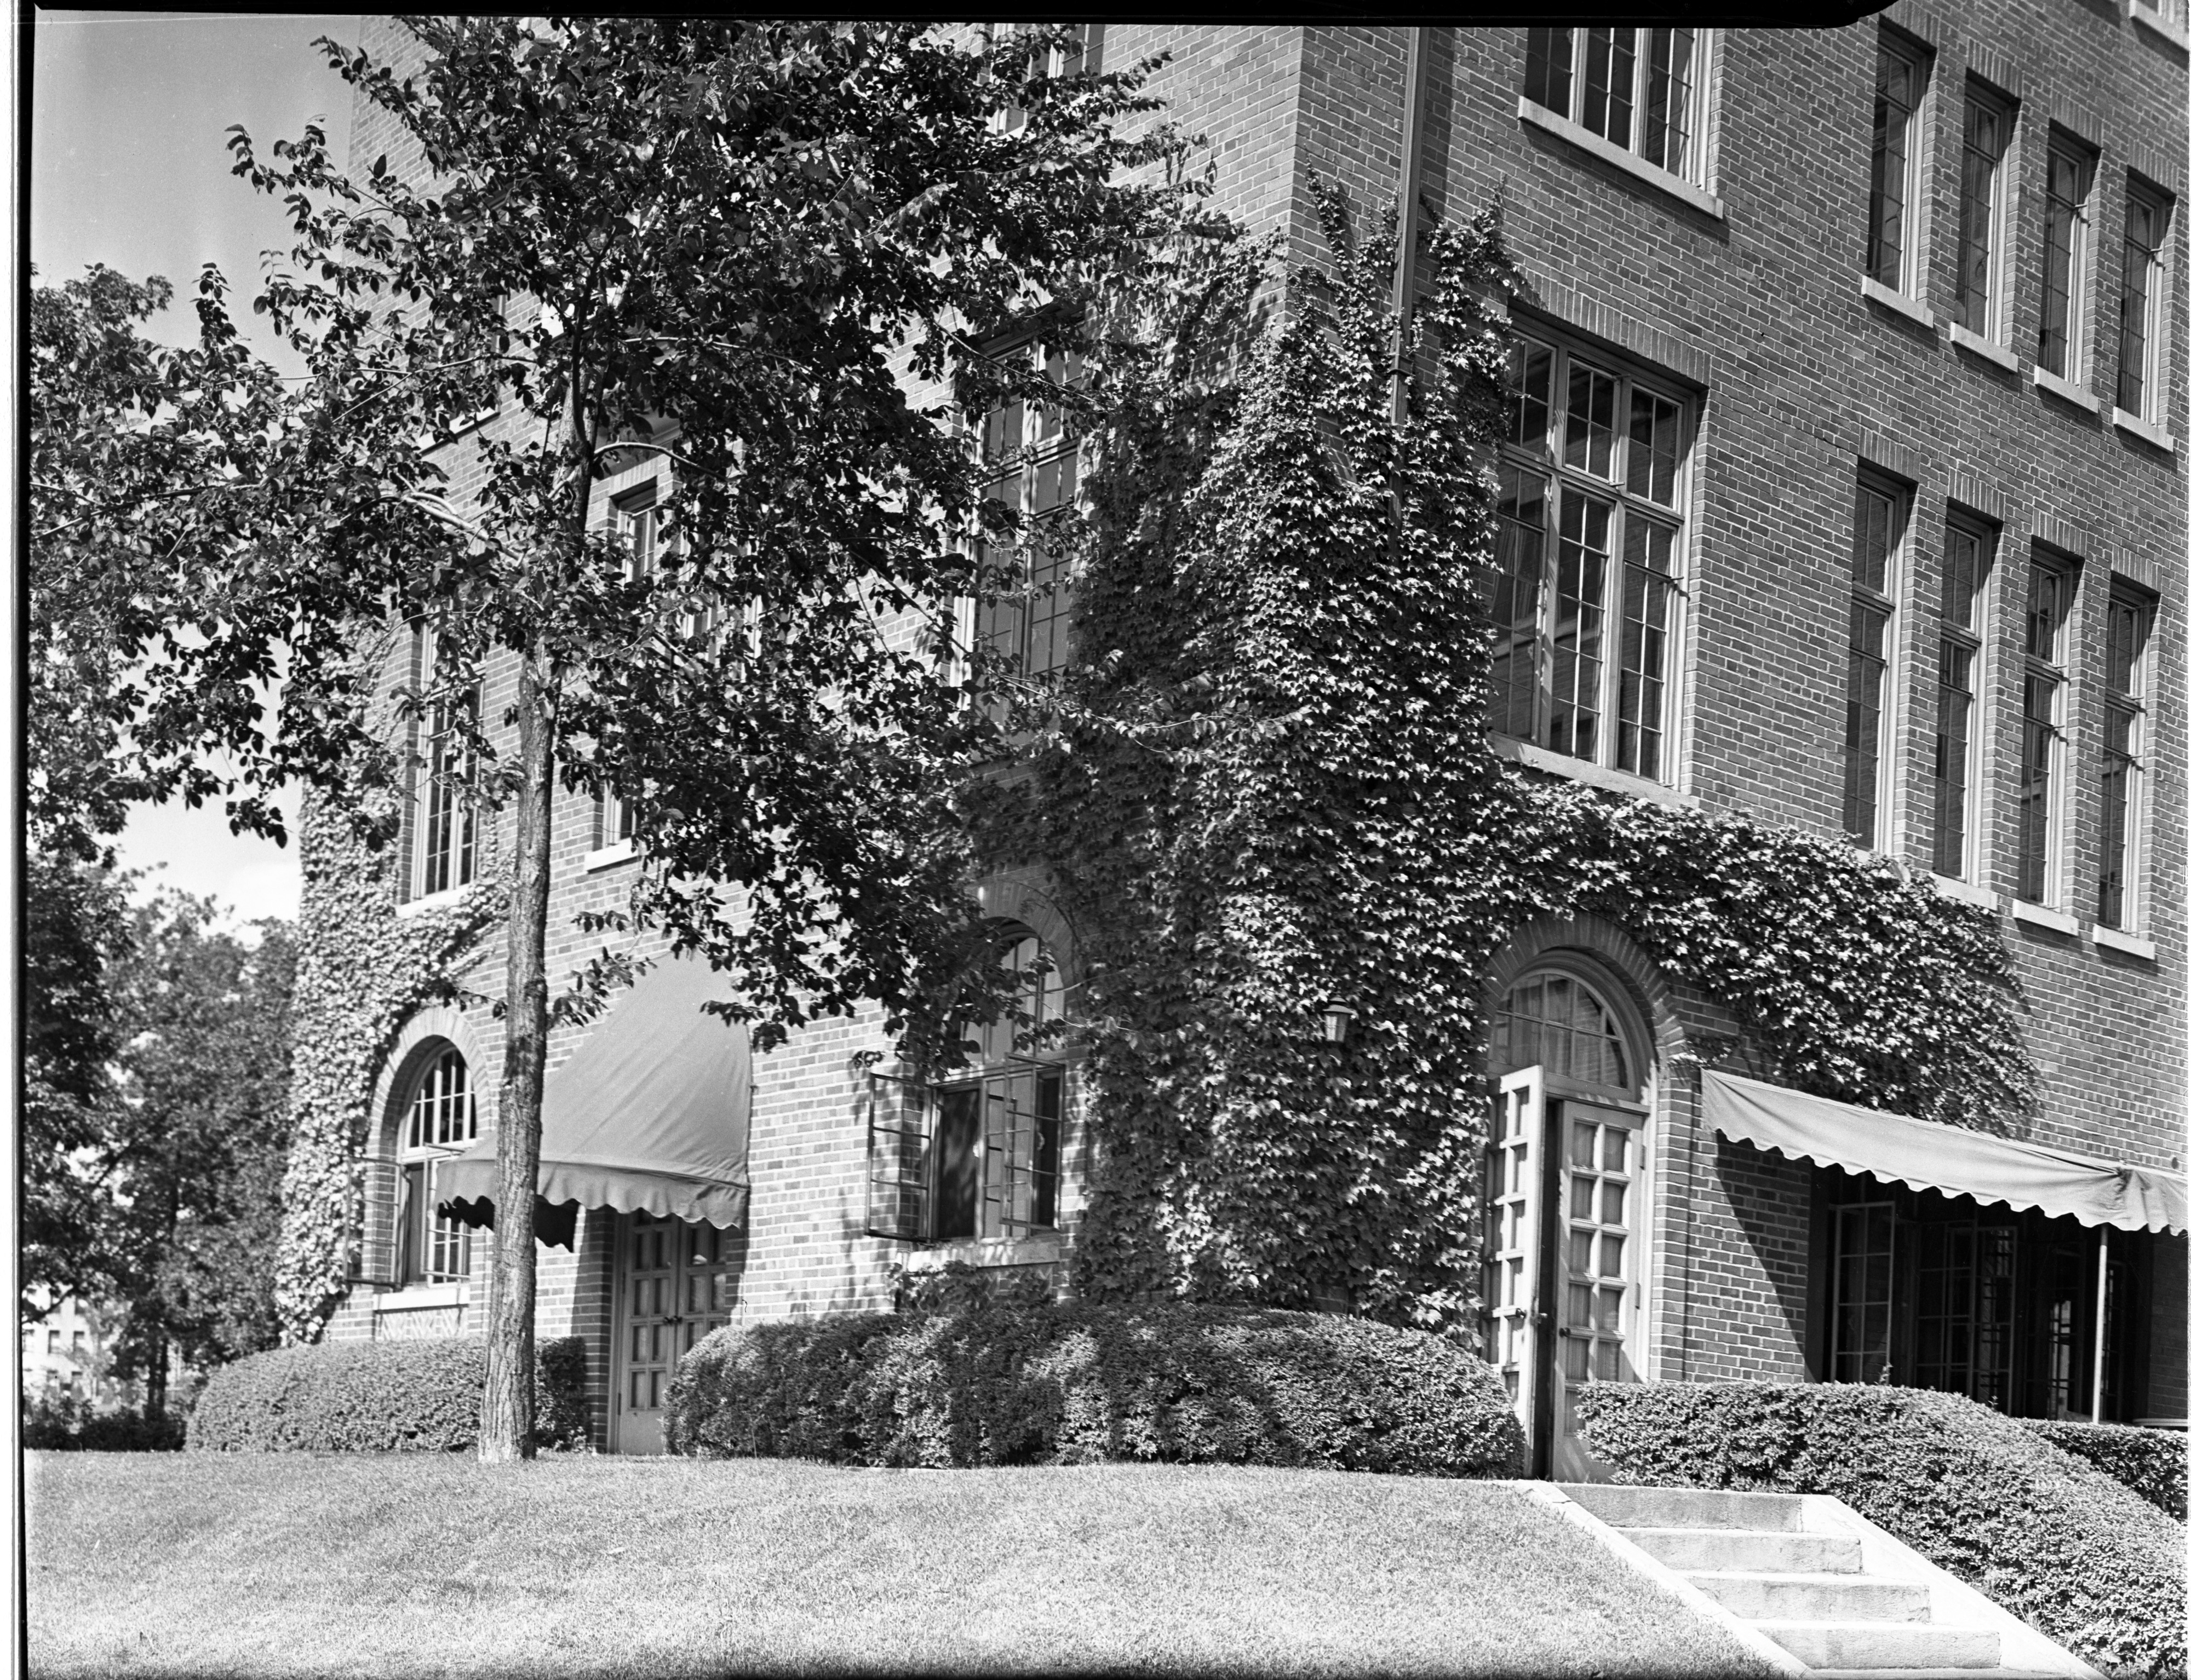 Ivy on central campus buildings, University of Michigan, August 1938 image